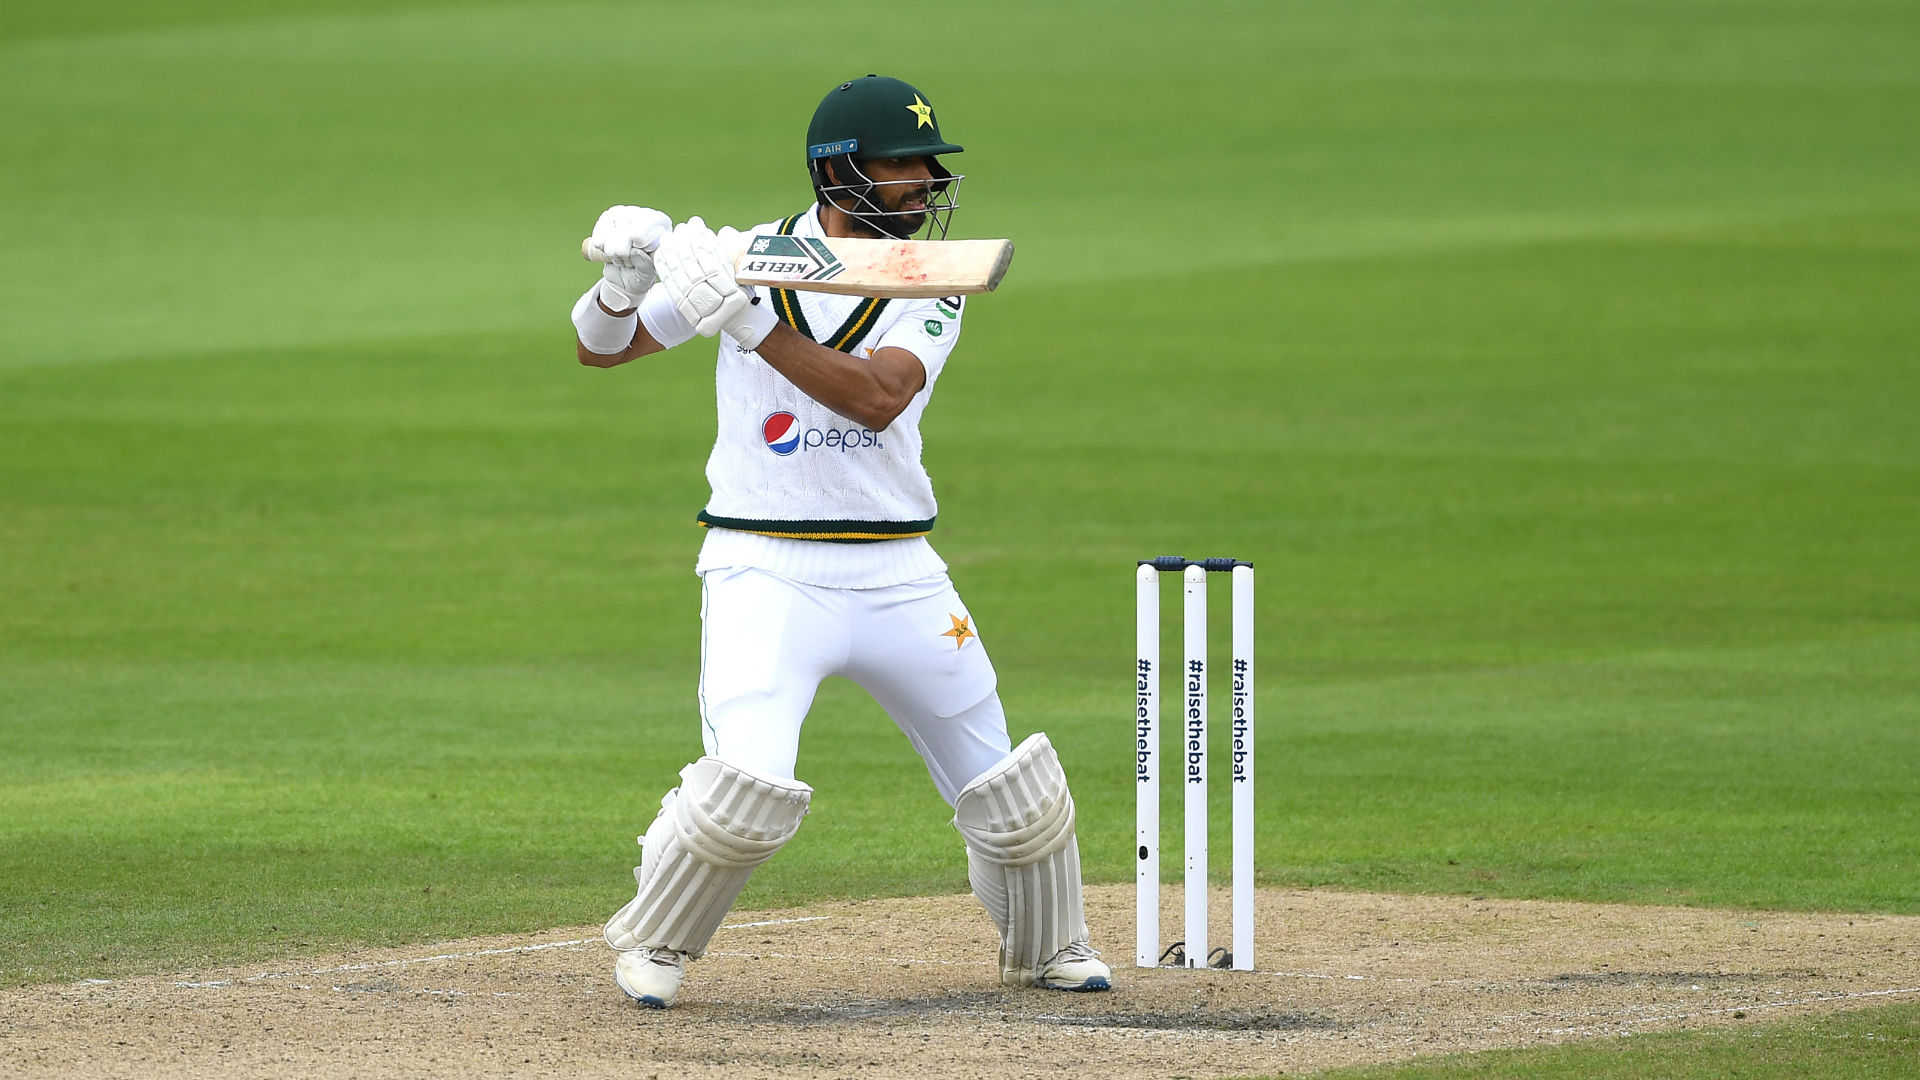 Shan and deliver - Pakistan attack cash in on opener's heroics